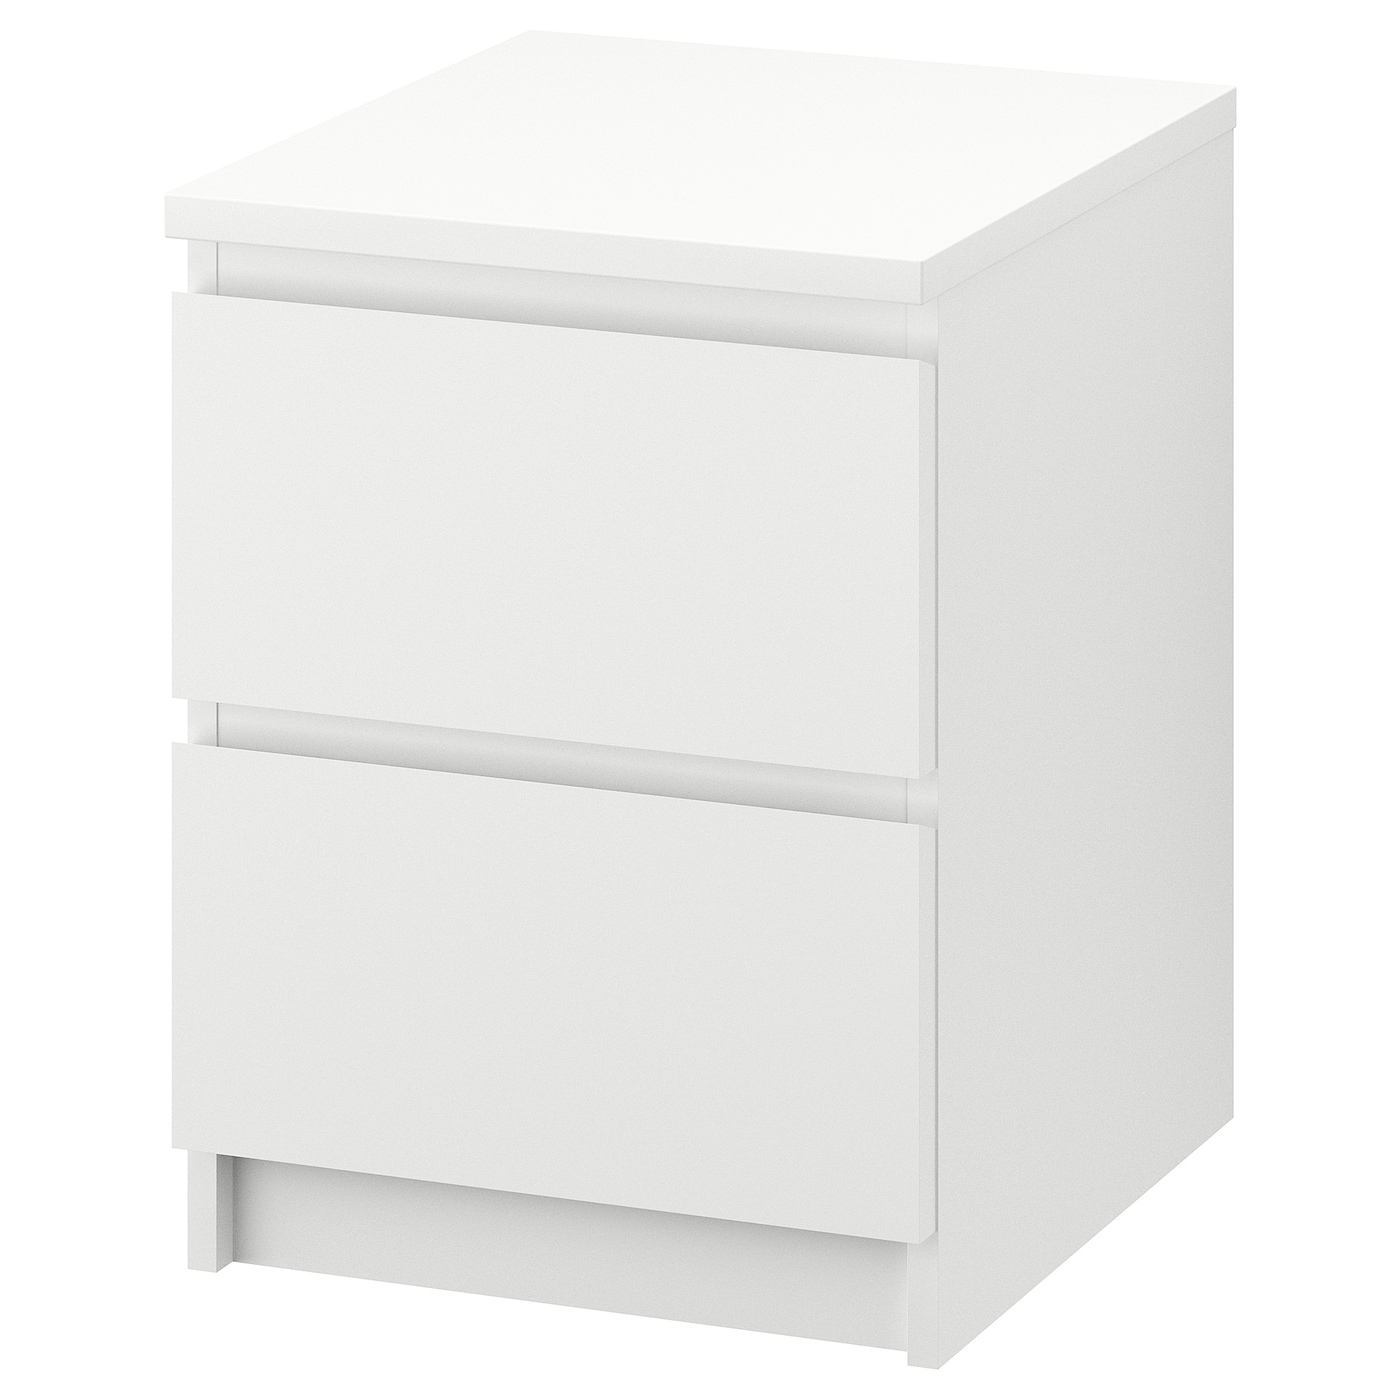 malm estructura de cama alta blanco 140 x 200 cm ikea. Black Bedroom Furniture Sets. Home Design Ideas